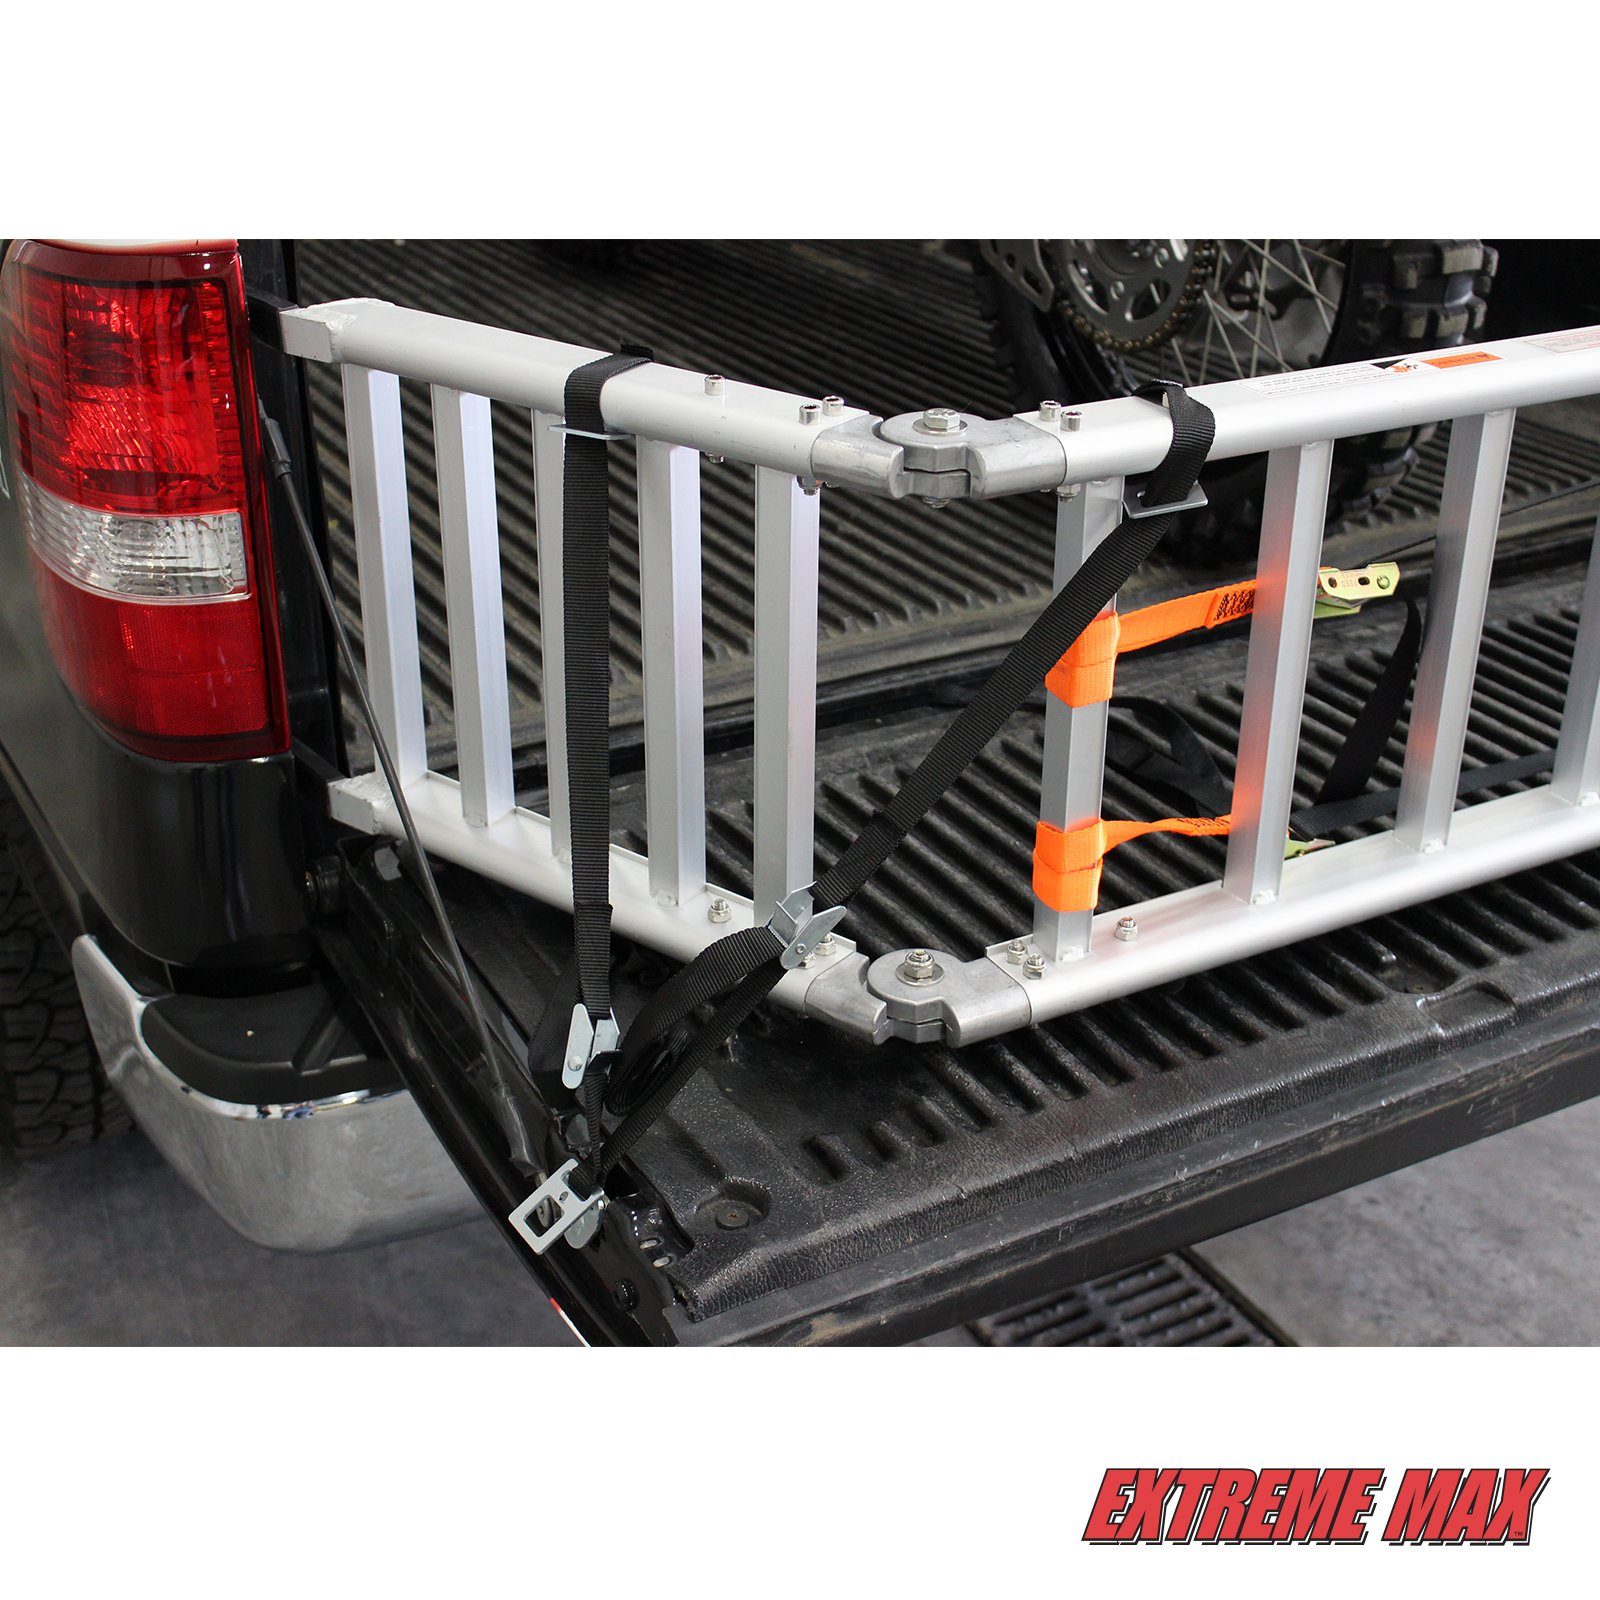 Extreme Max (NR002S-SLVR) Motorcycle RampXtender Aluminum Ramp Set and Tailgate Extender Combo by Extreme Max (Image #4)